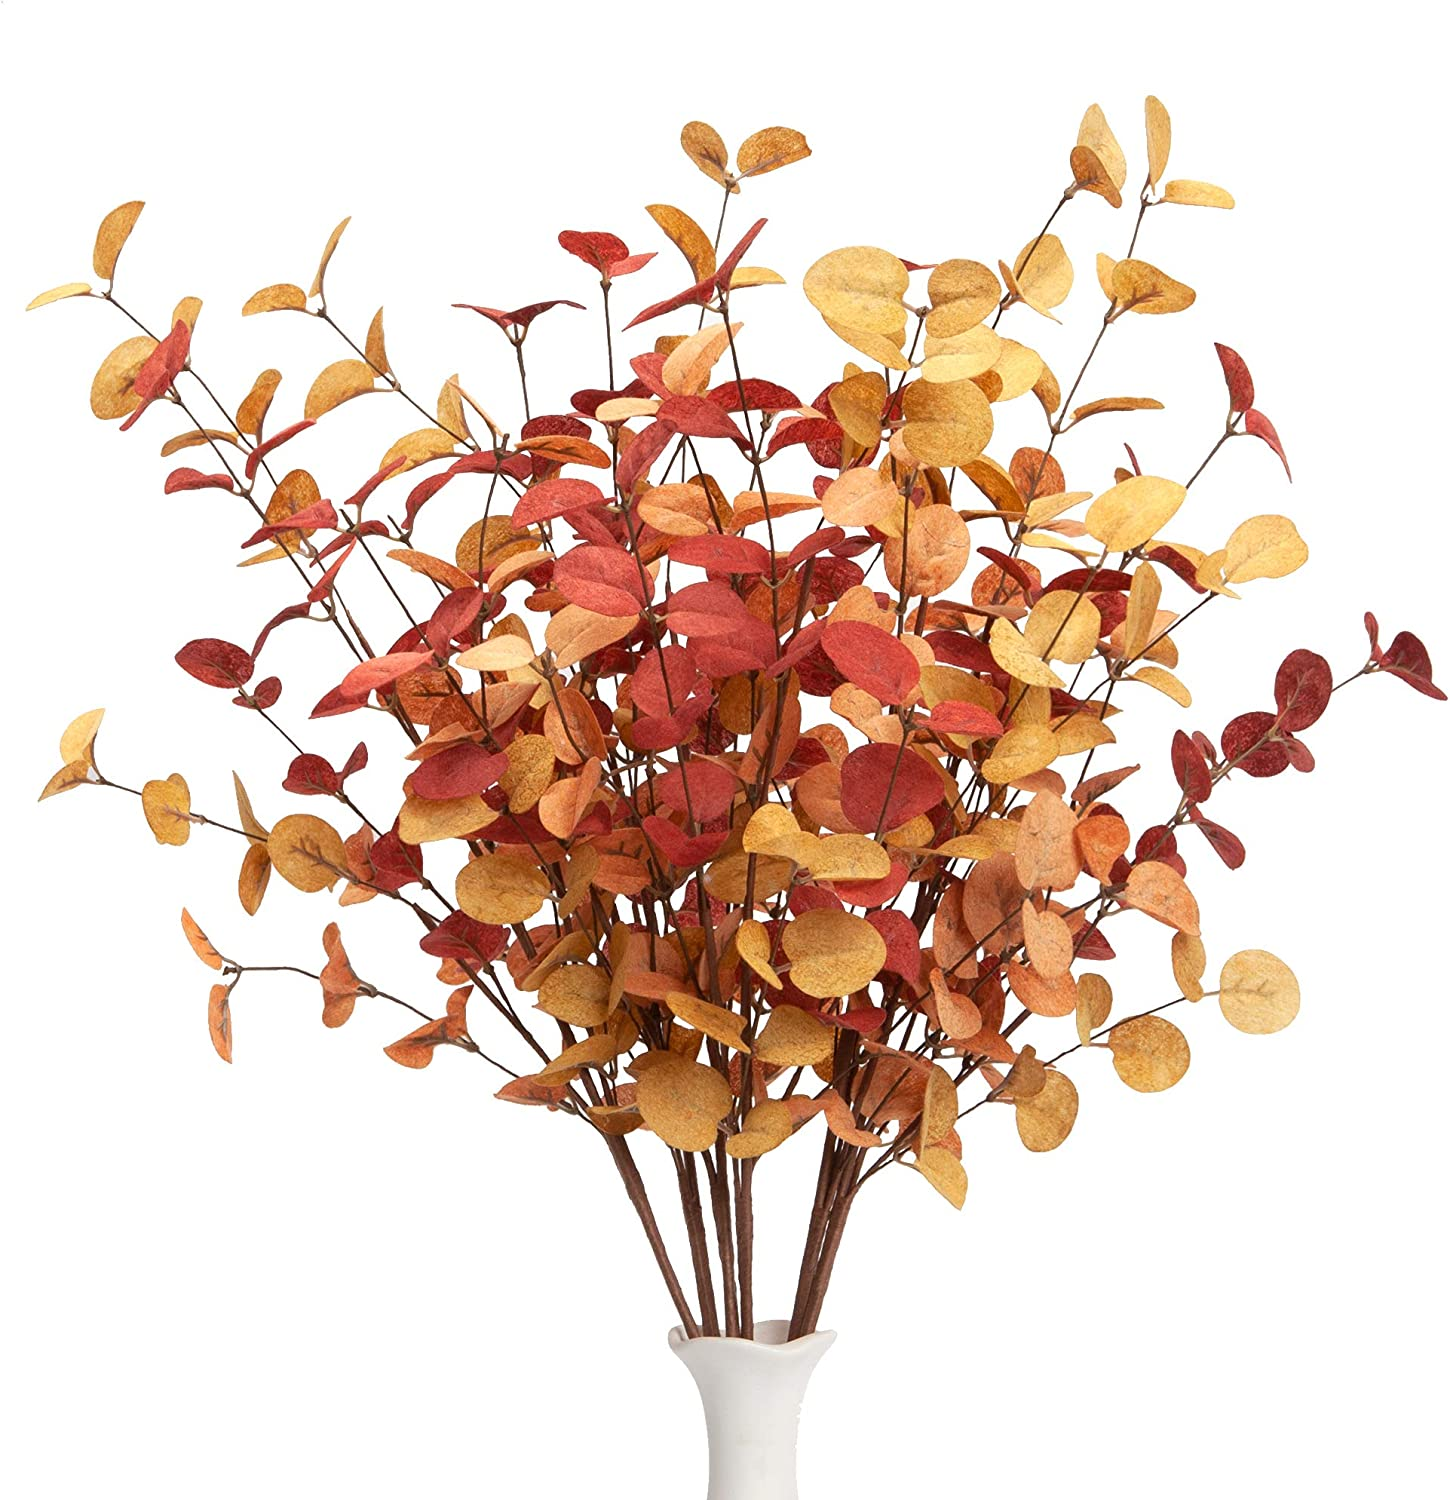 VGIA 6 Pcs Artificial Eucalyptus Sale item Fall Manufacturer direct delivery with Fal Stems Decorations